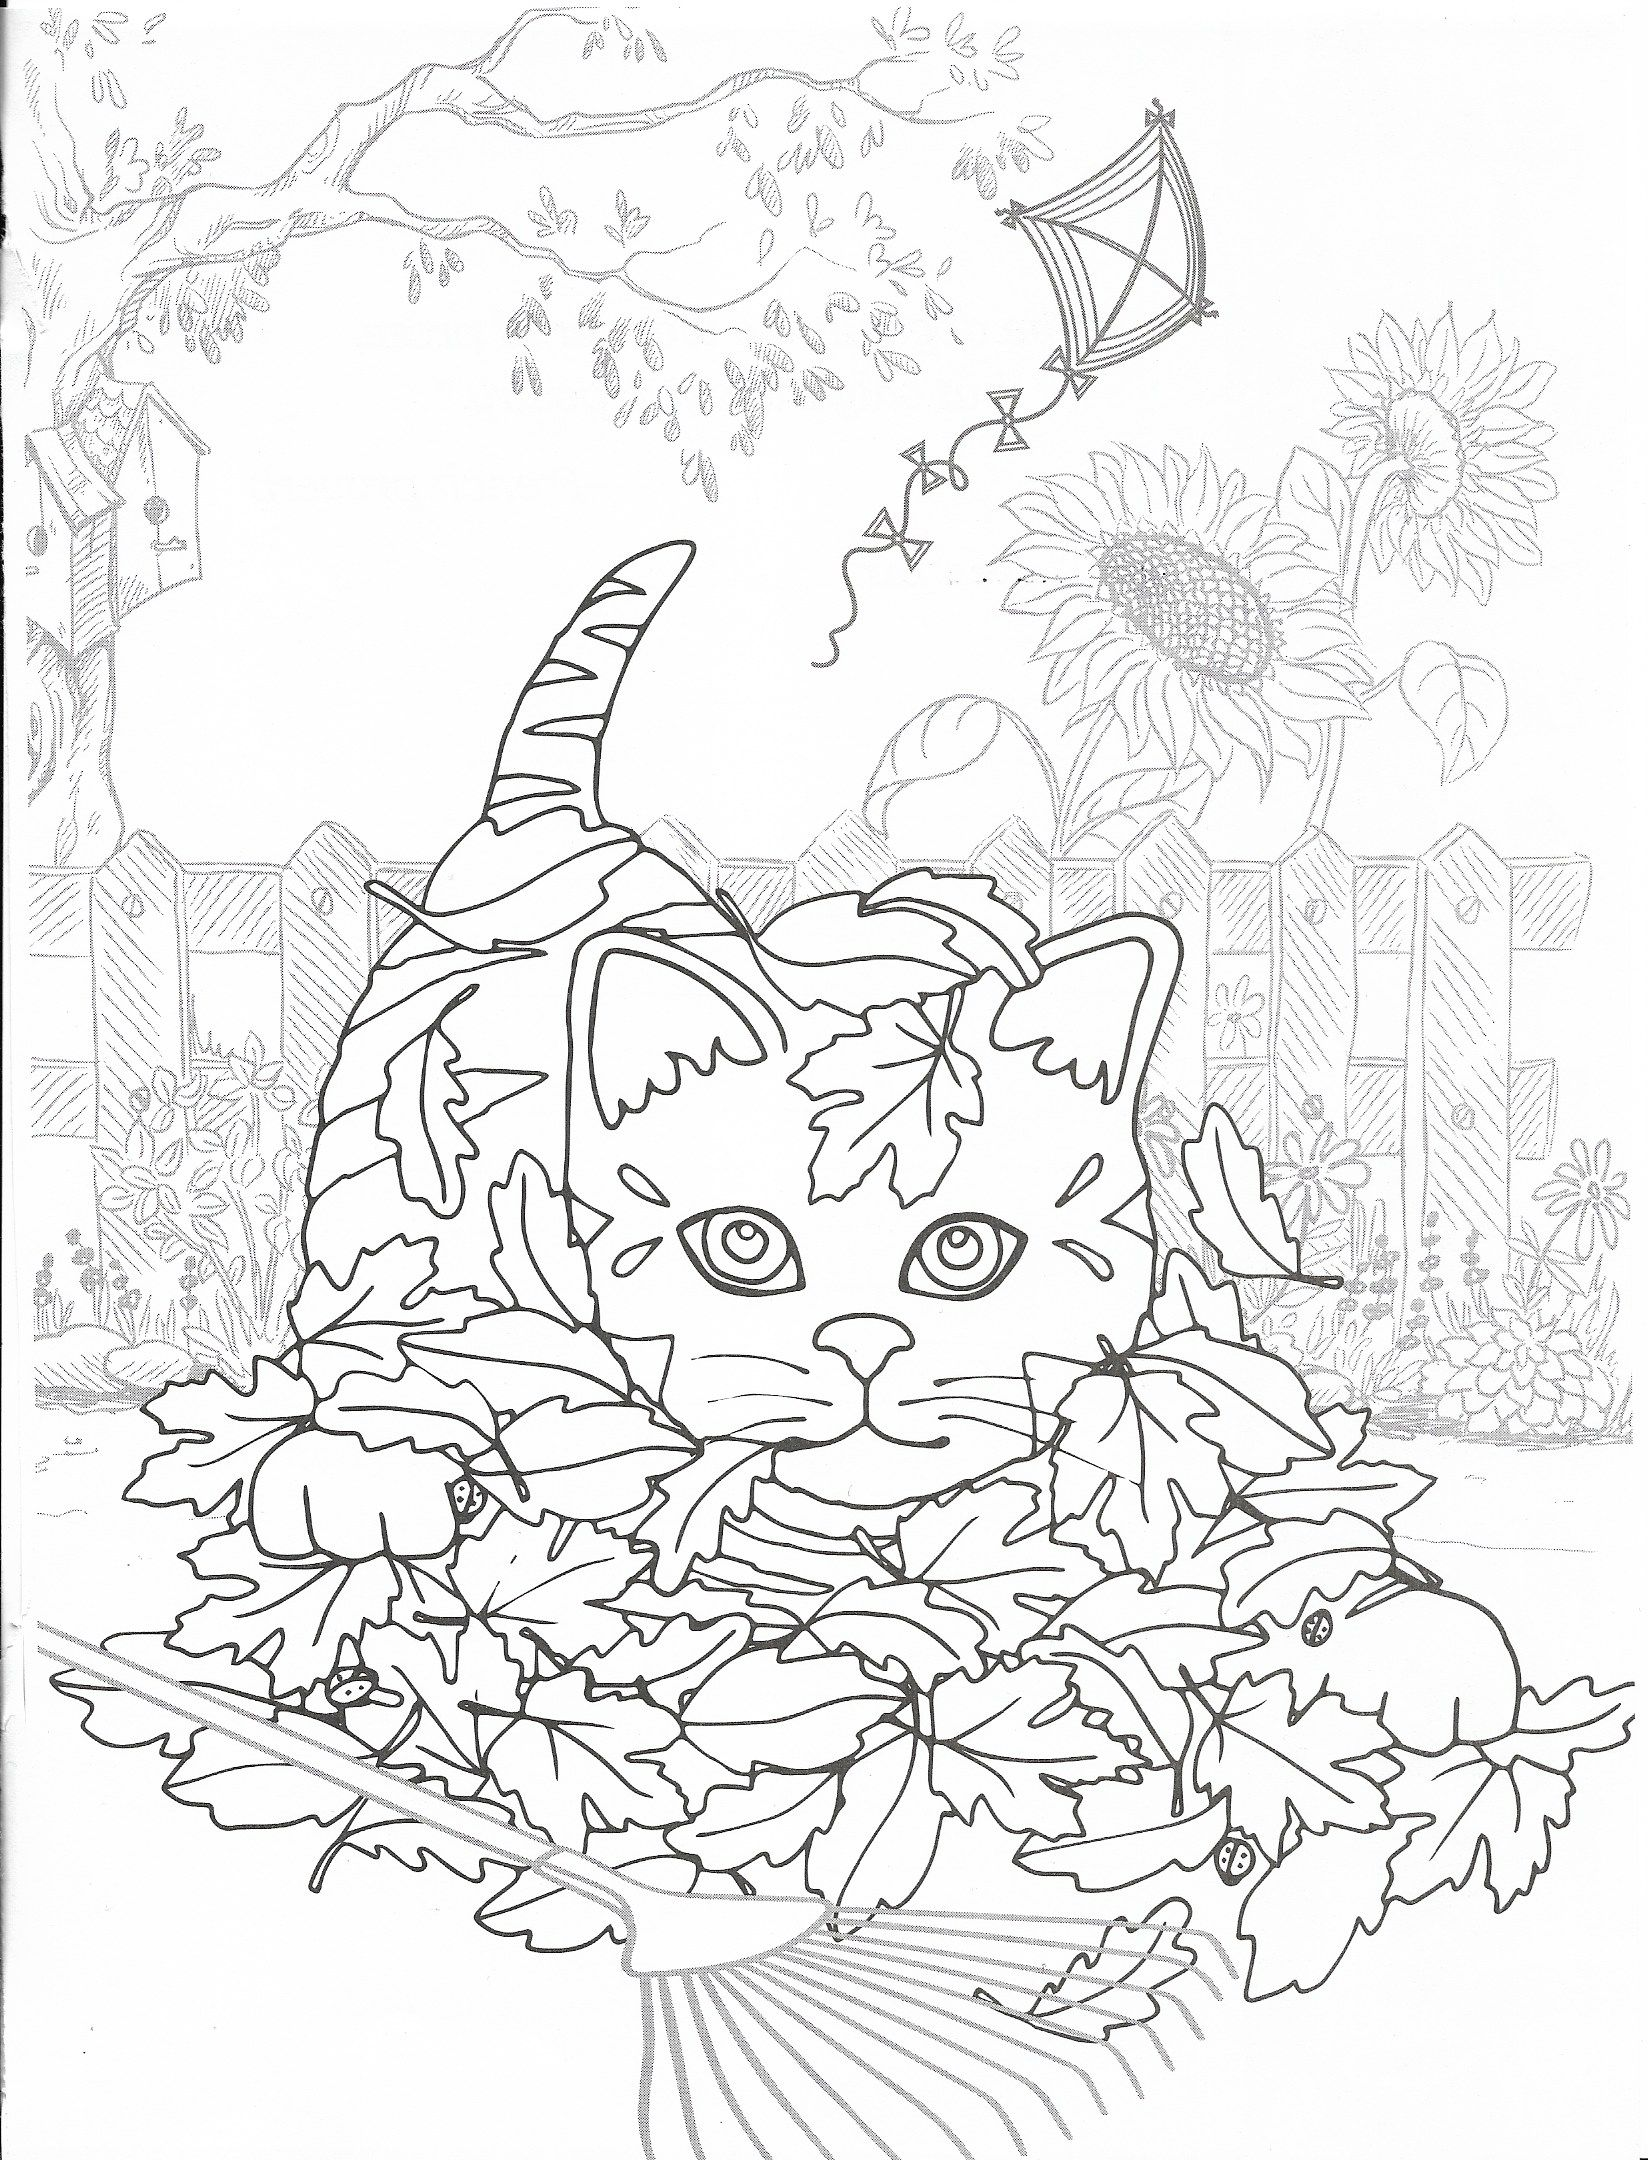 pin by wanda twellman on just cats coloring 2 coloriage. Black Bedroom Furniture Sets. Home Design Ideas